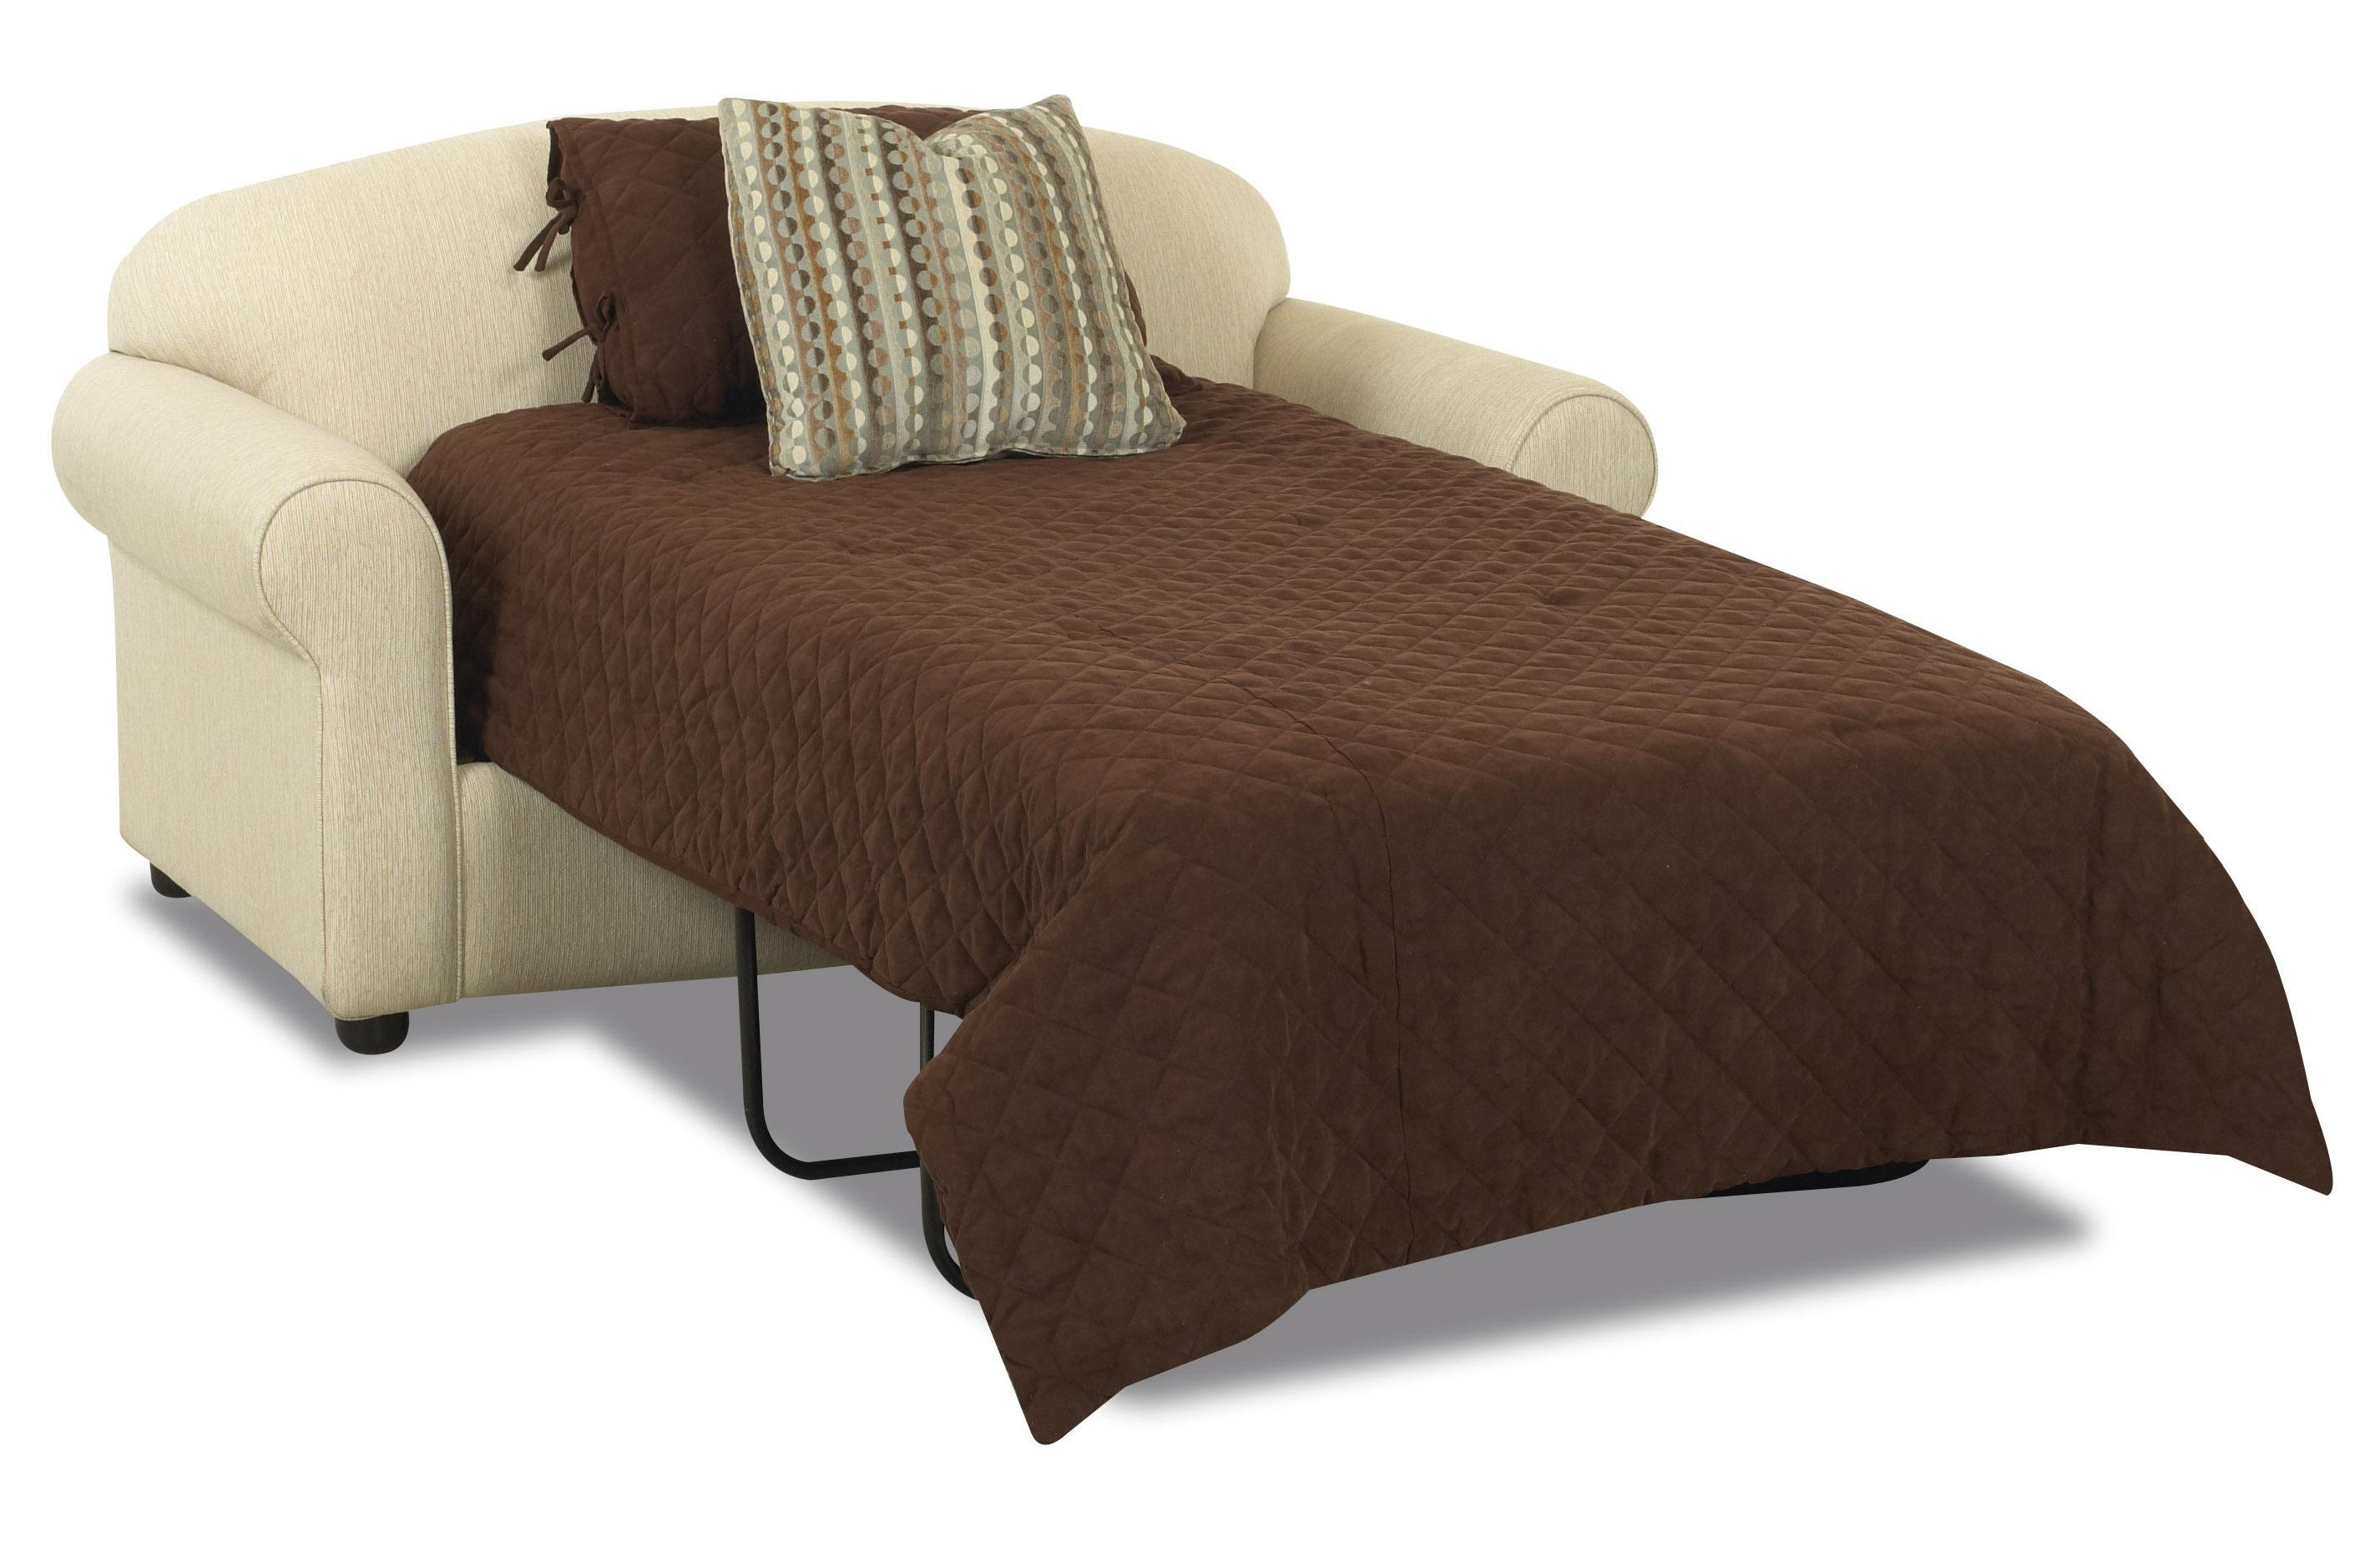 Klaussner Possibilities Innerspring Twin Sleeper Loveseat – Dunk Intended For Twin Sleeper Sofa Chairs (Image 9 of 20)